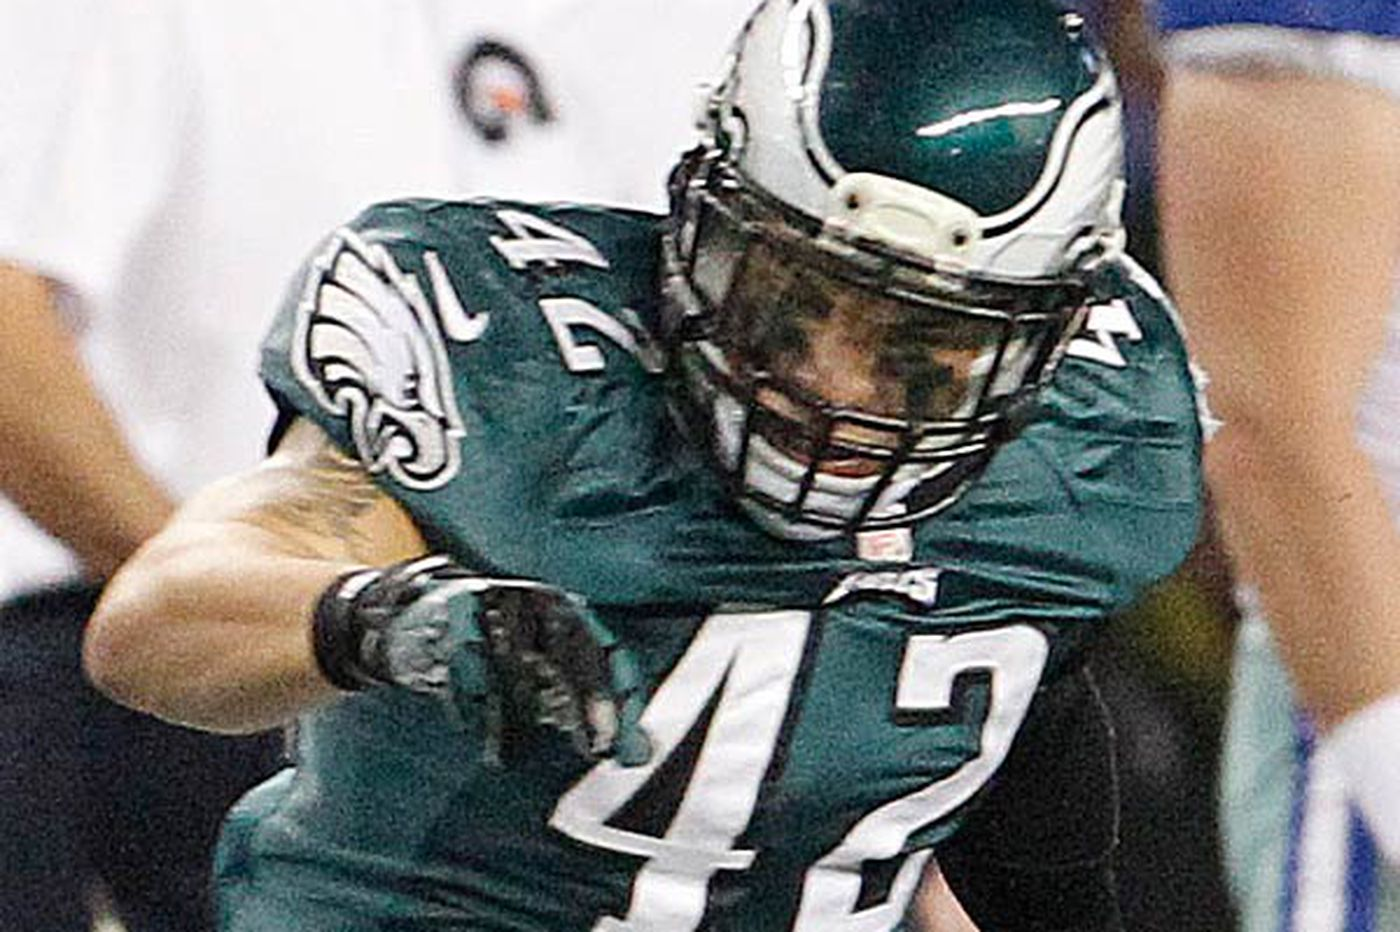 Eagles Notebook: Coleman returning, but is spot available?